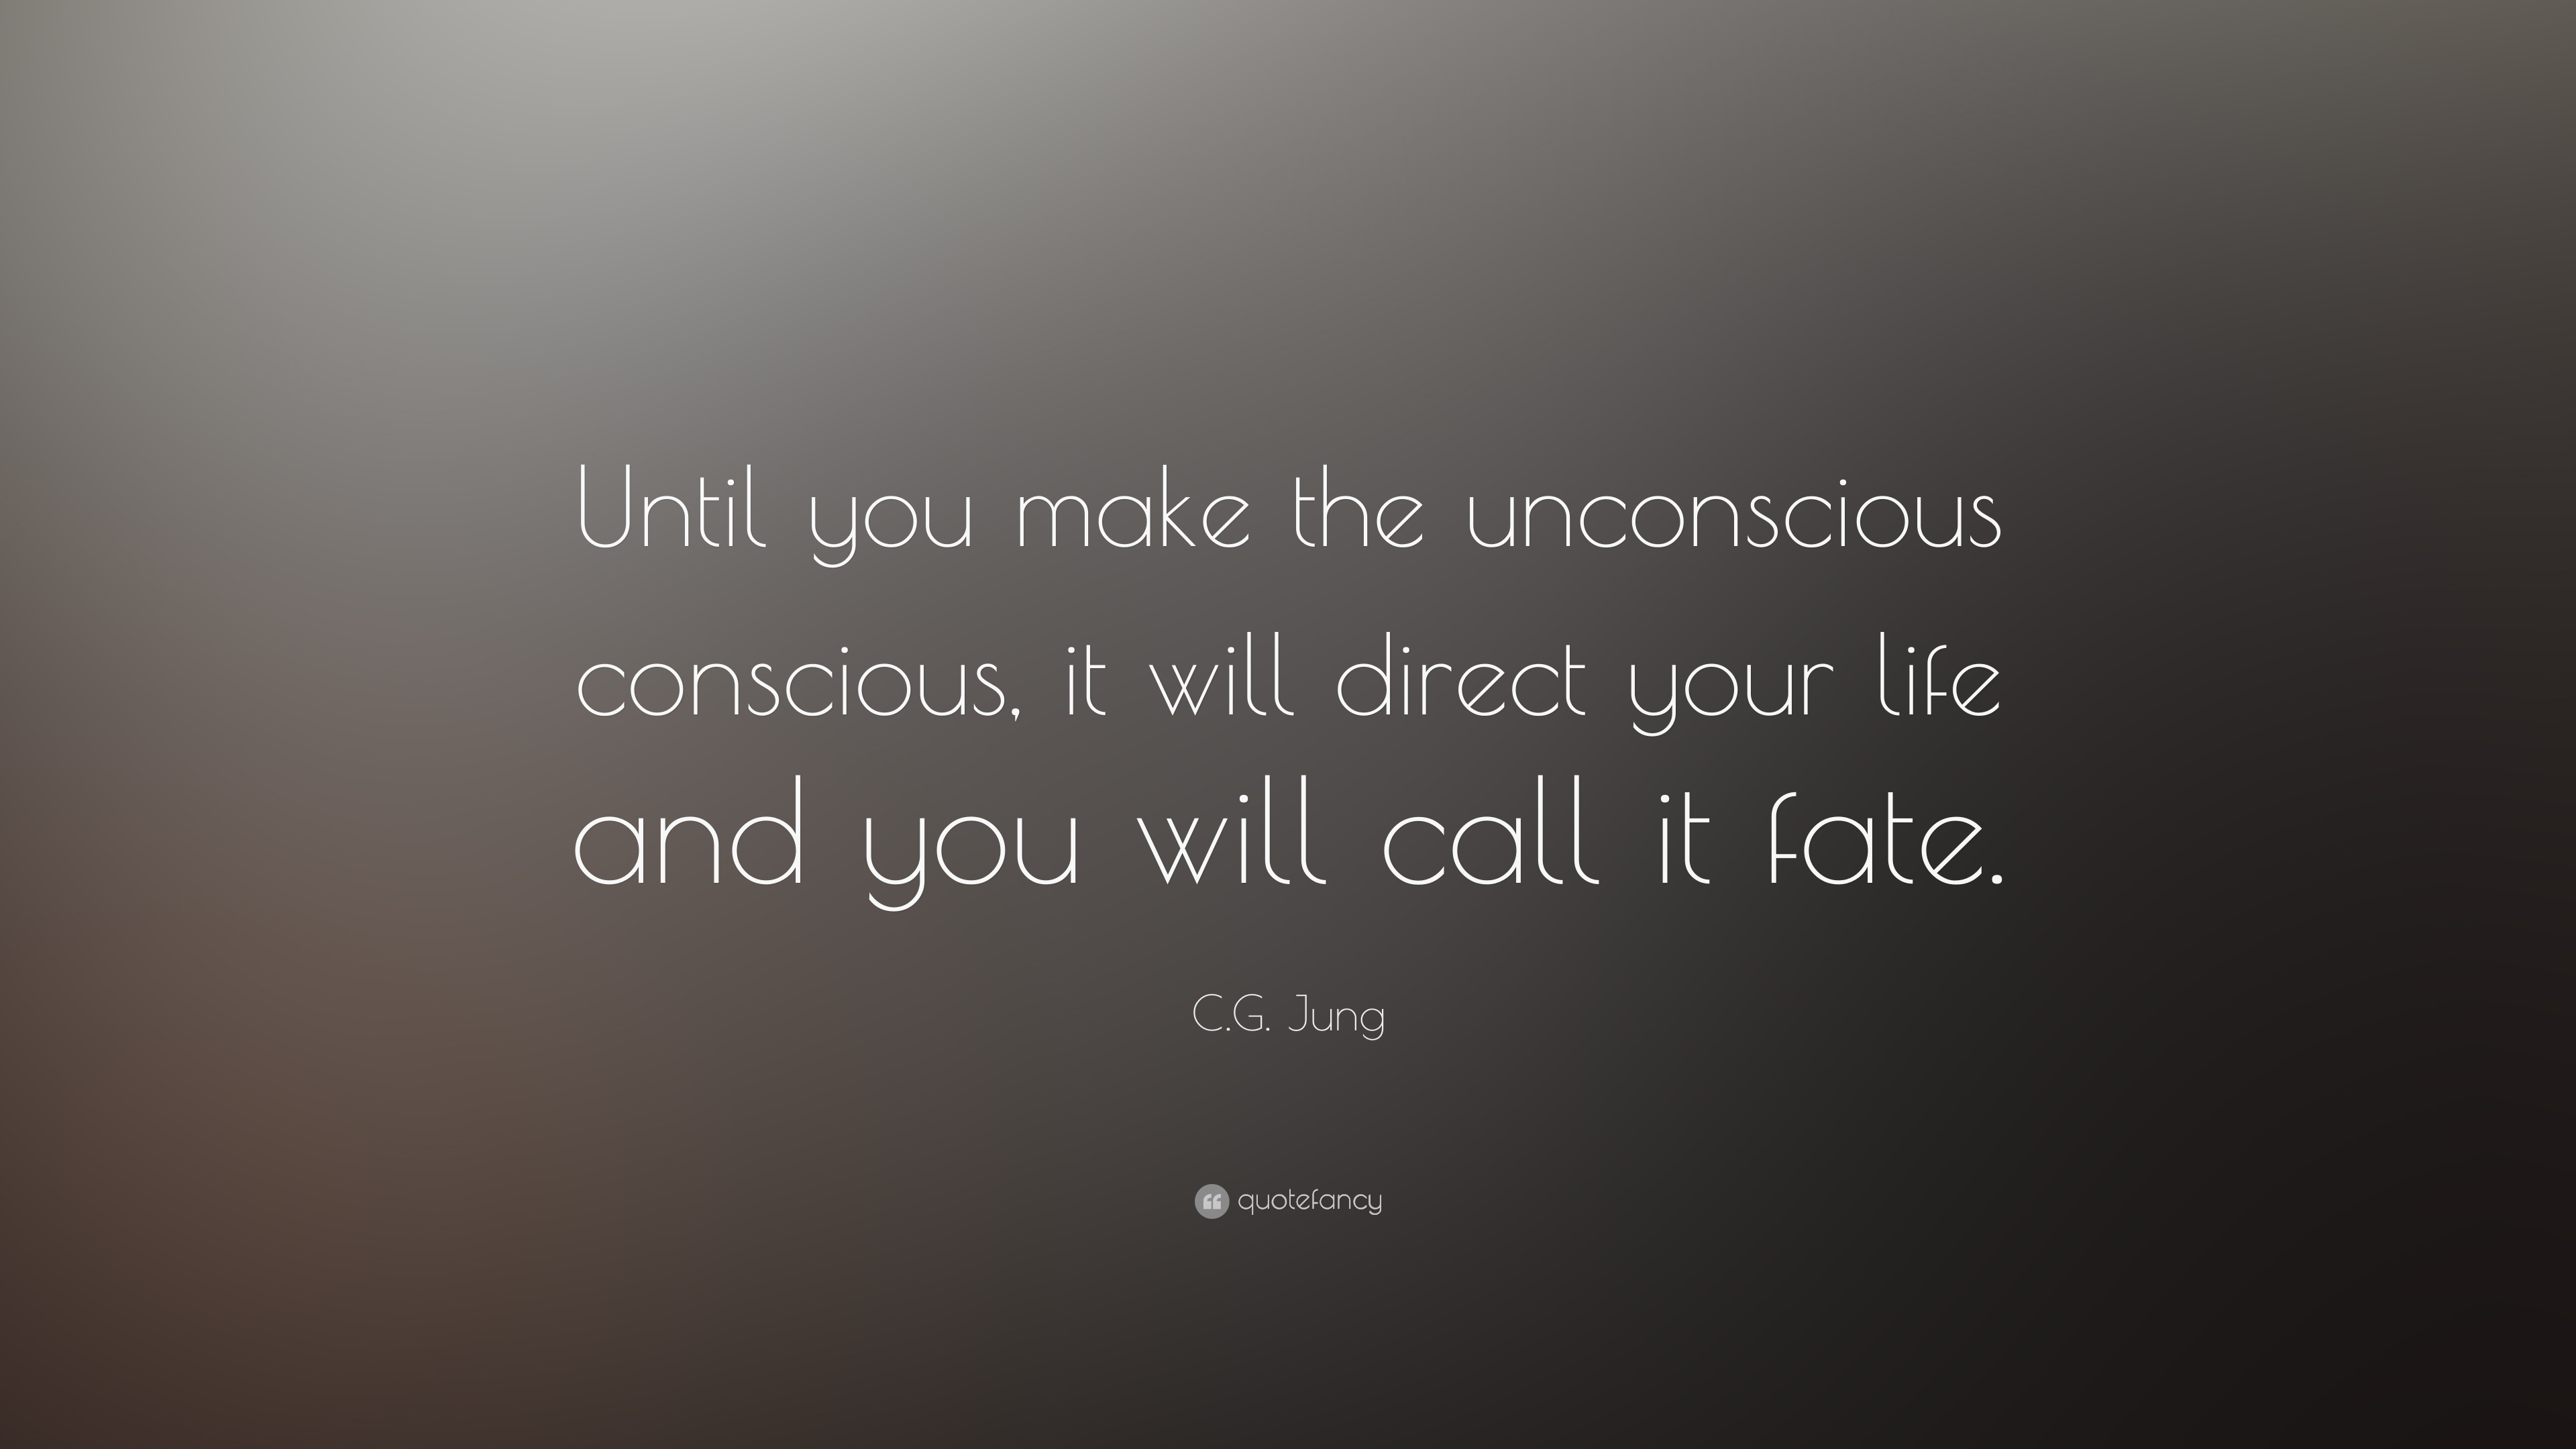 Image result for until you make the unconscious conscious it will direct your life and you will call it fate